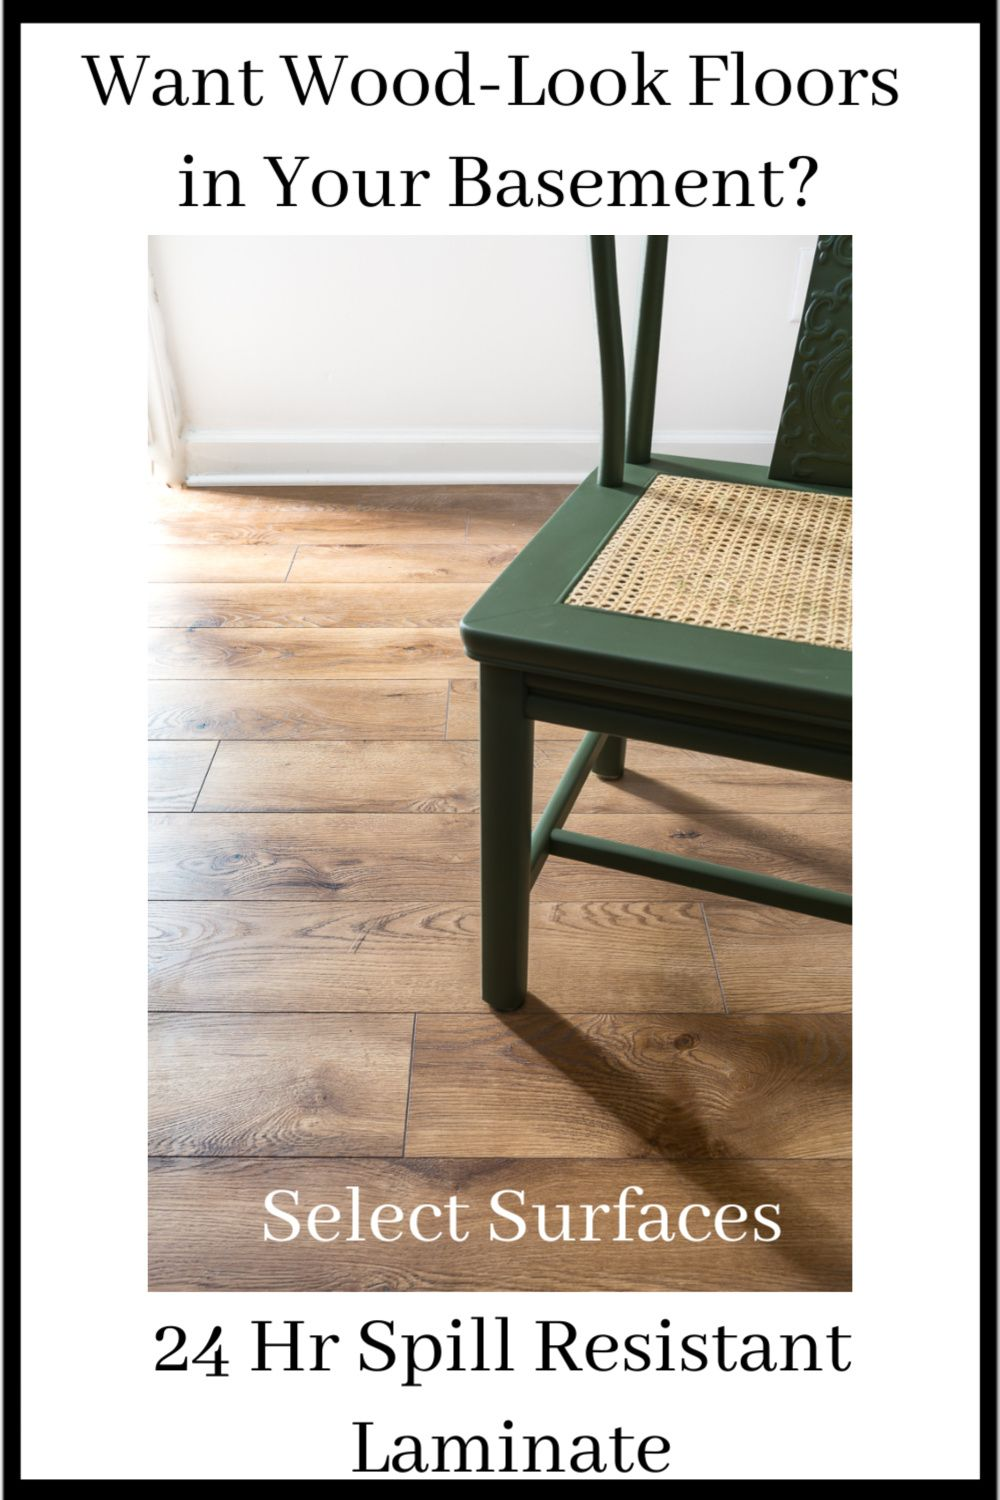 Why we installed Select Surfaces Laminate Floors in our